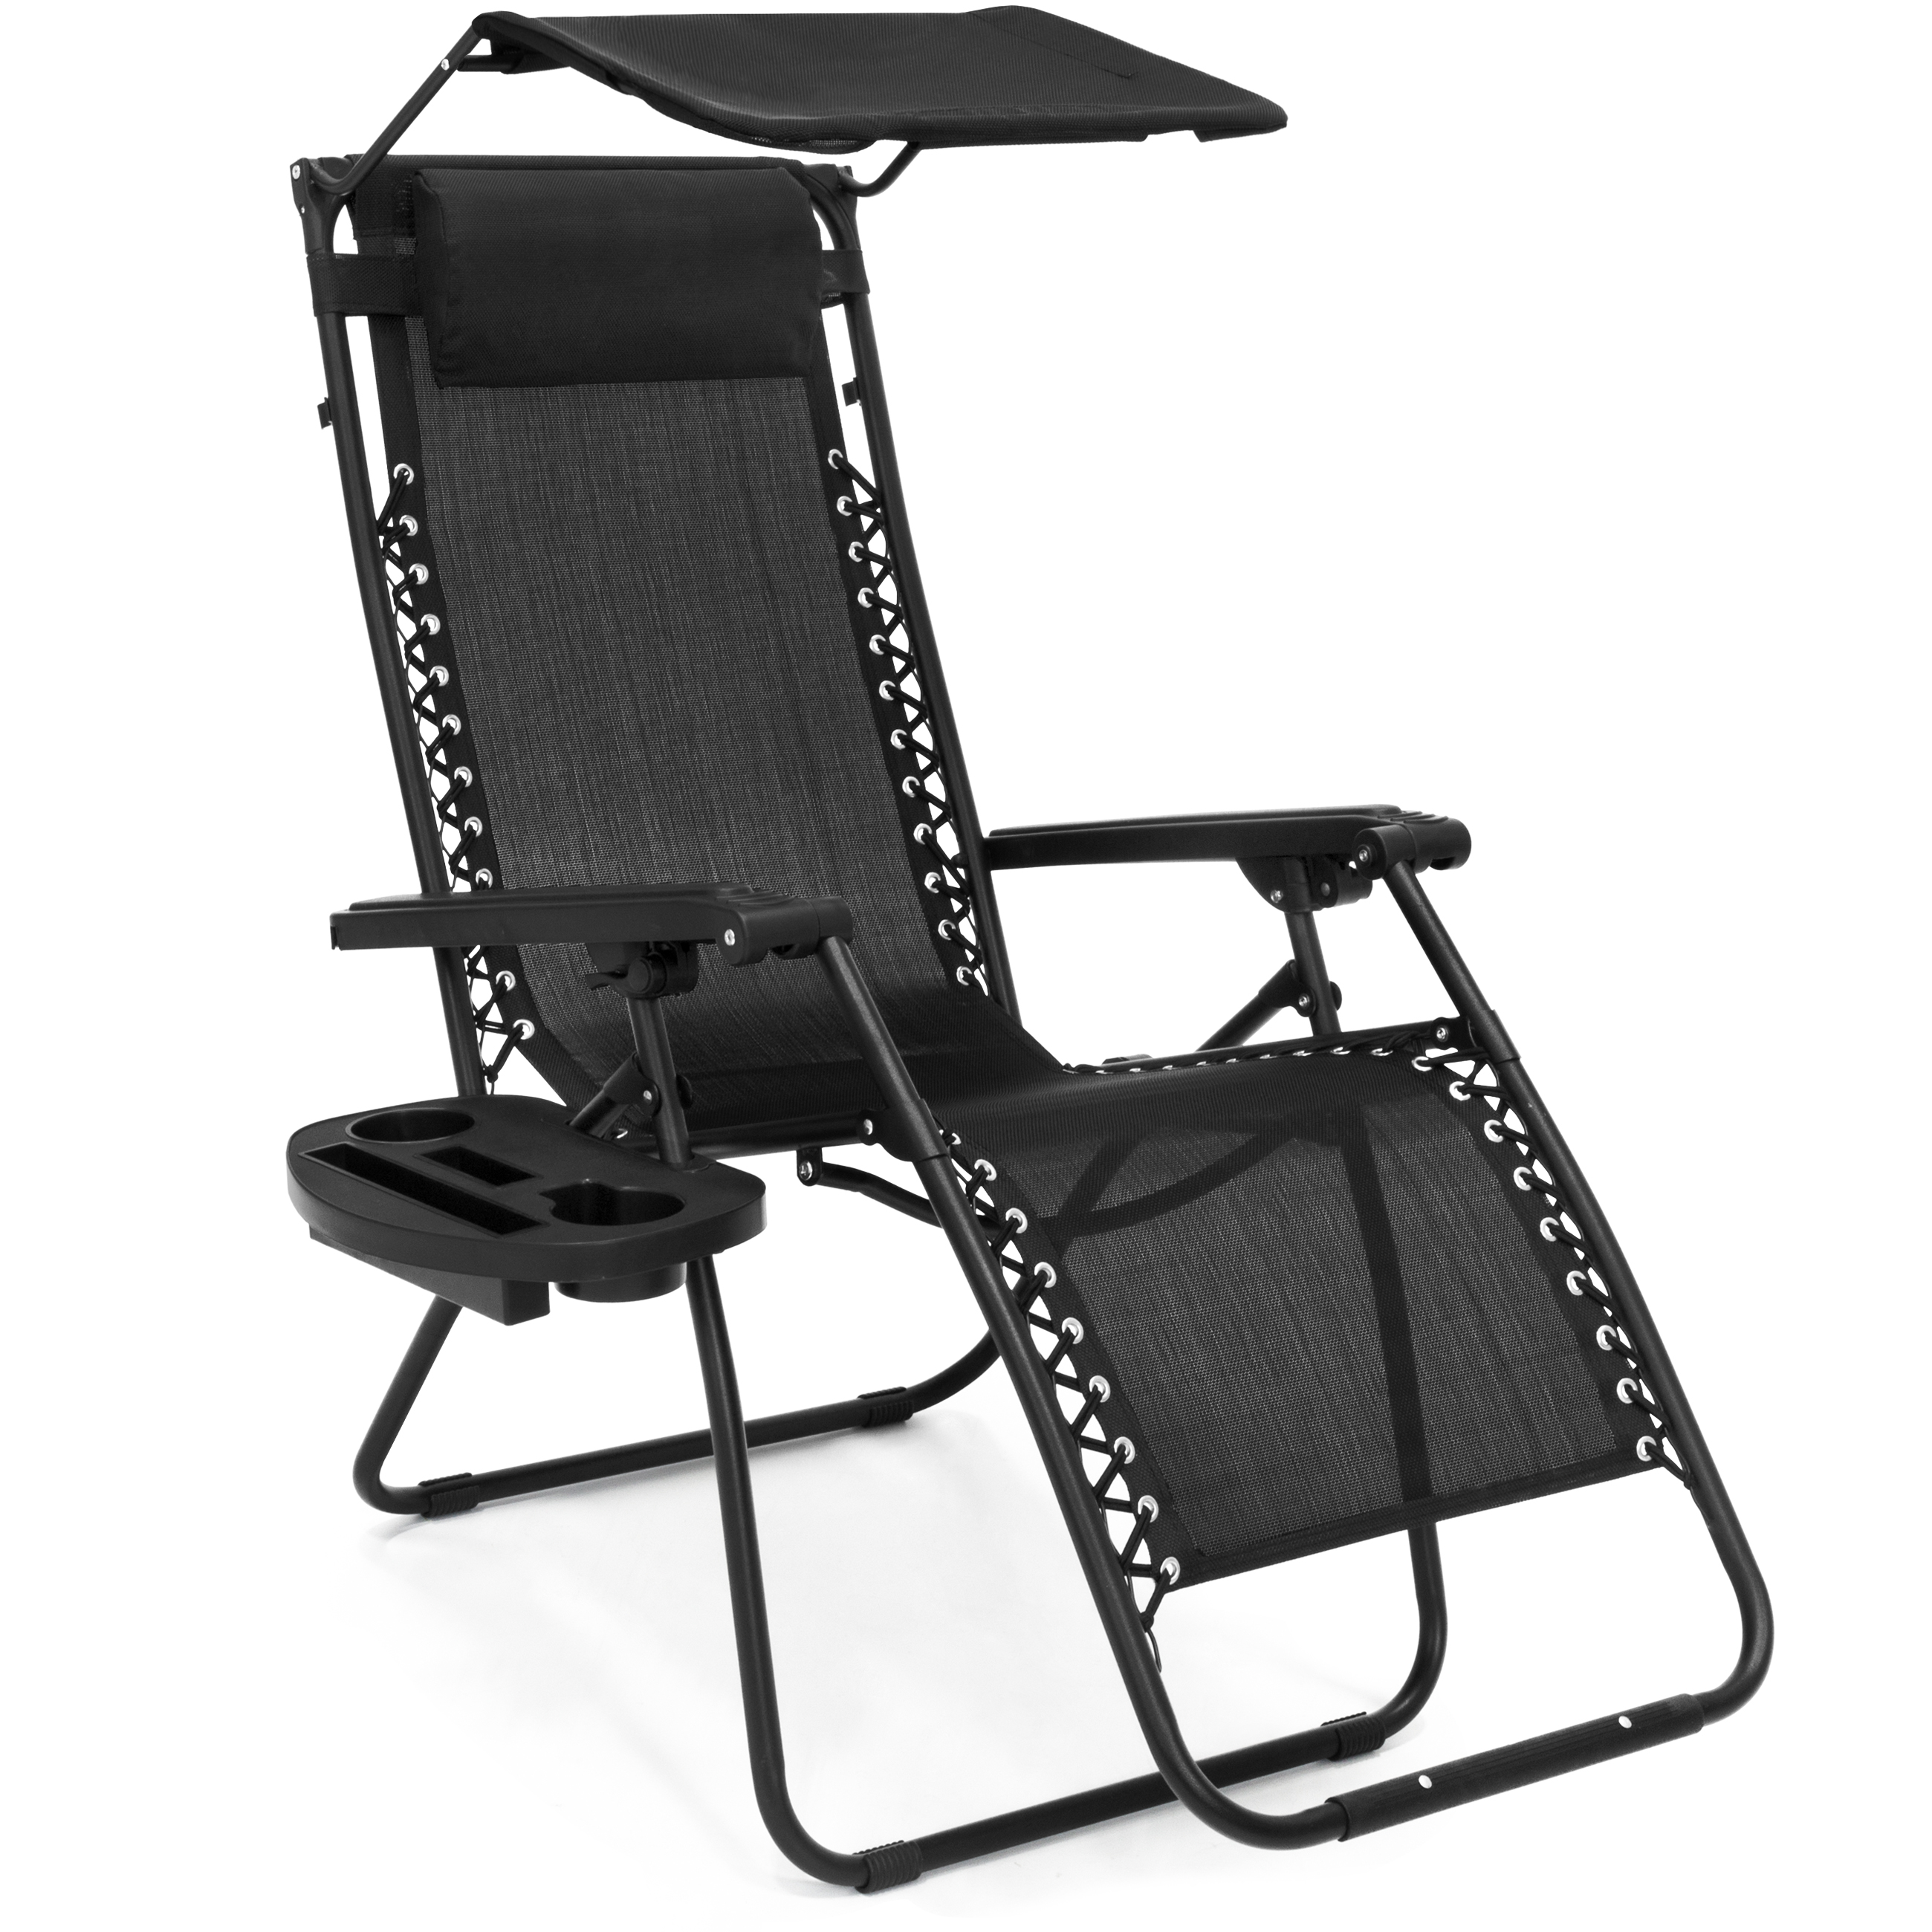 folding zero gravity recliner lounge chair w canopy shade u0026 magazine cup holder black - Zero Gravity Chair